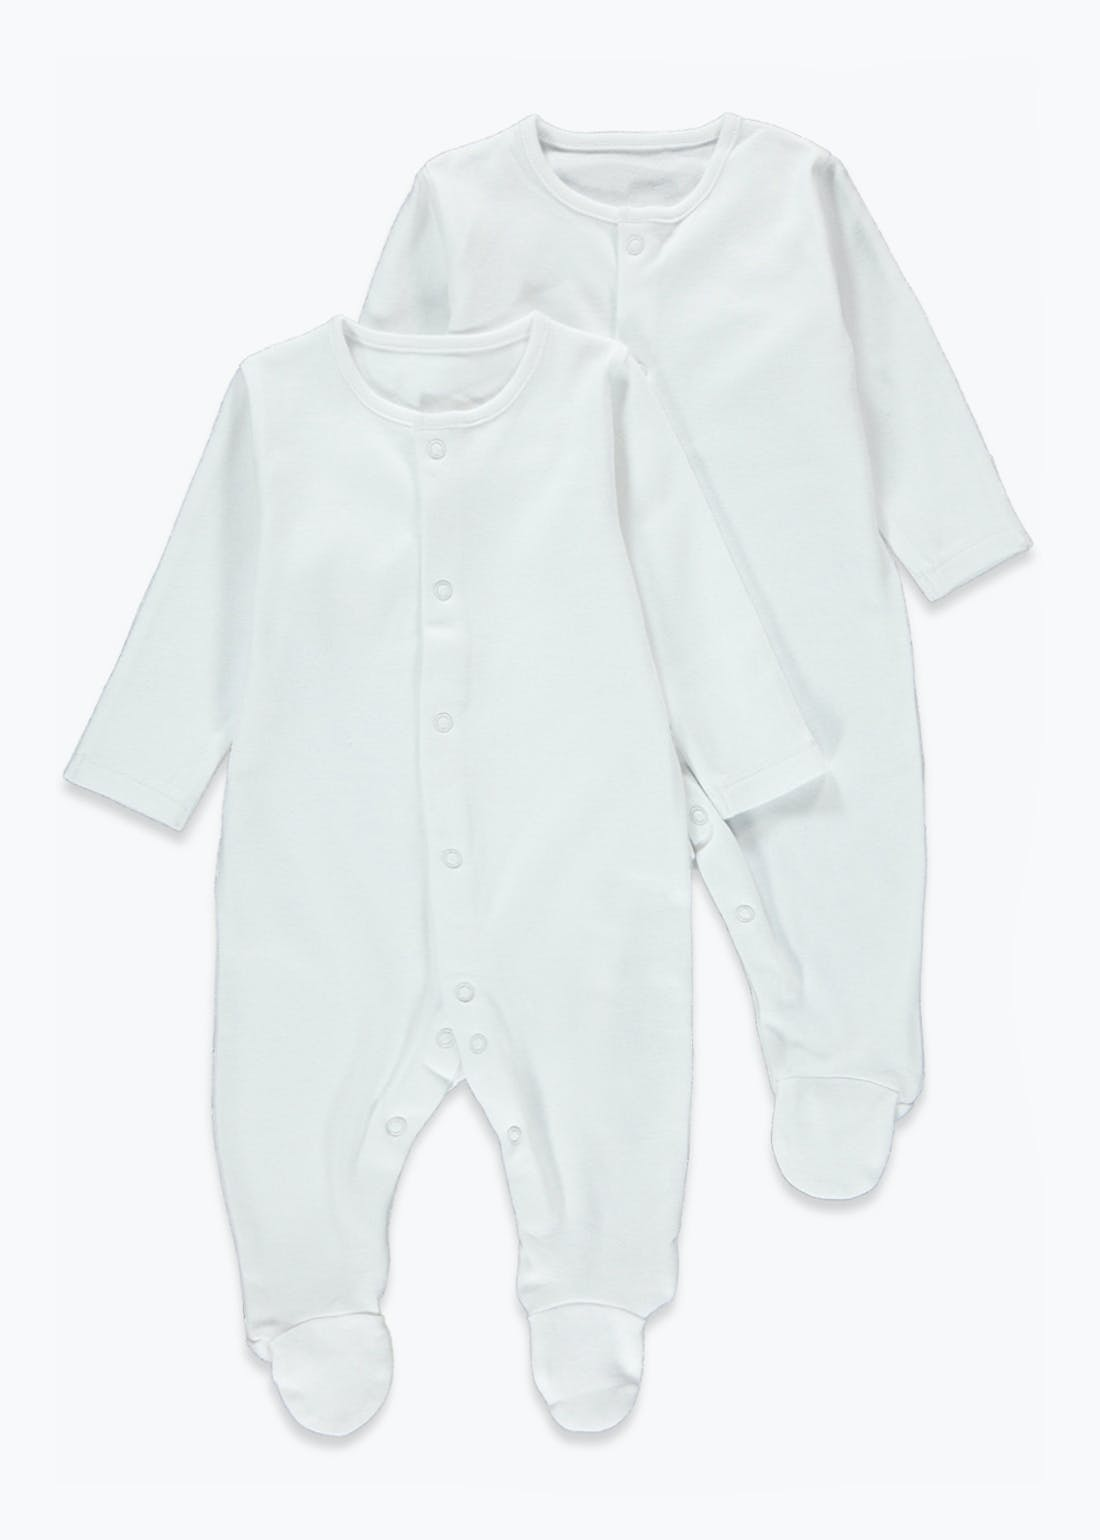 Unisex 2 Pack Organic Cotton Baby Grows (Tiny Baby-12mths)